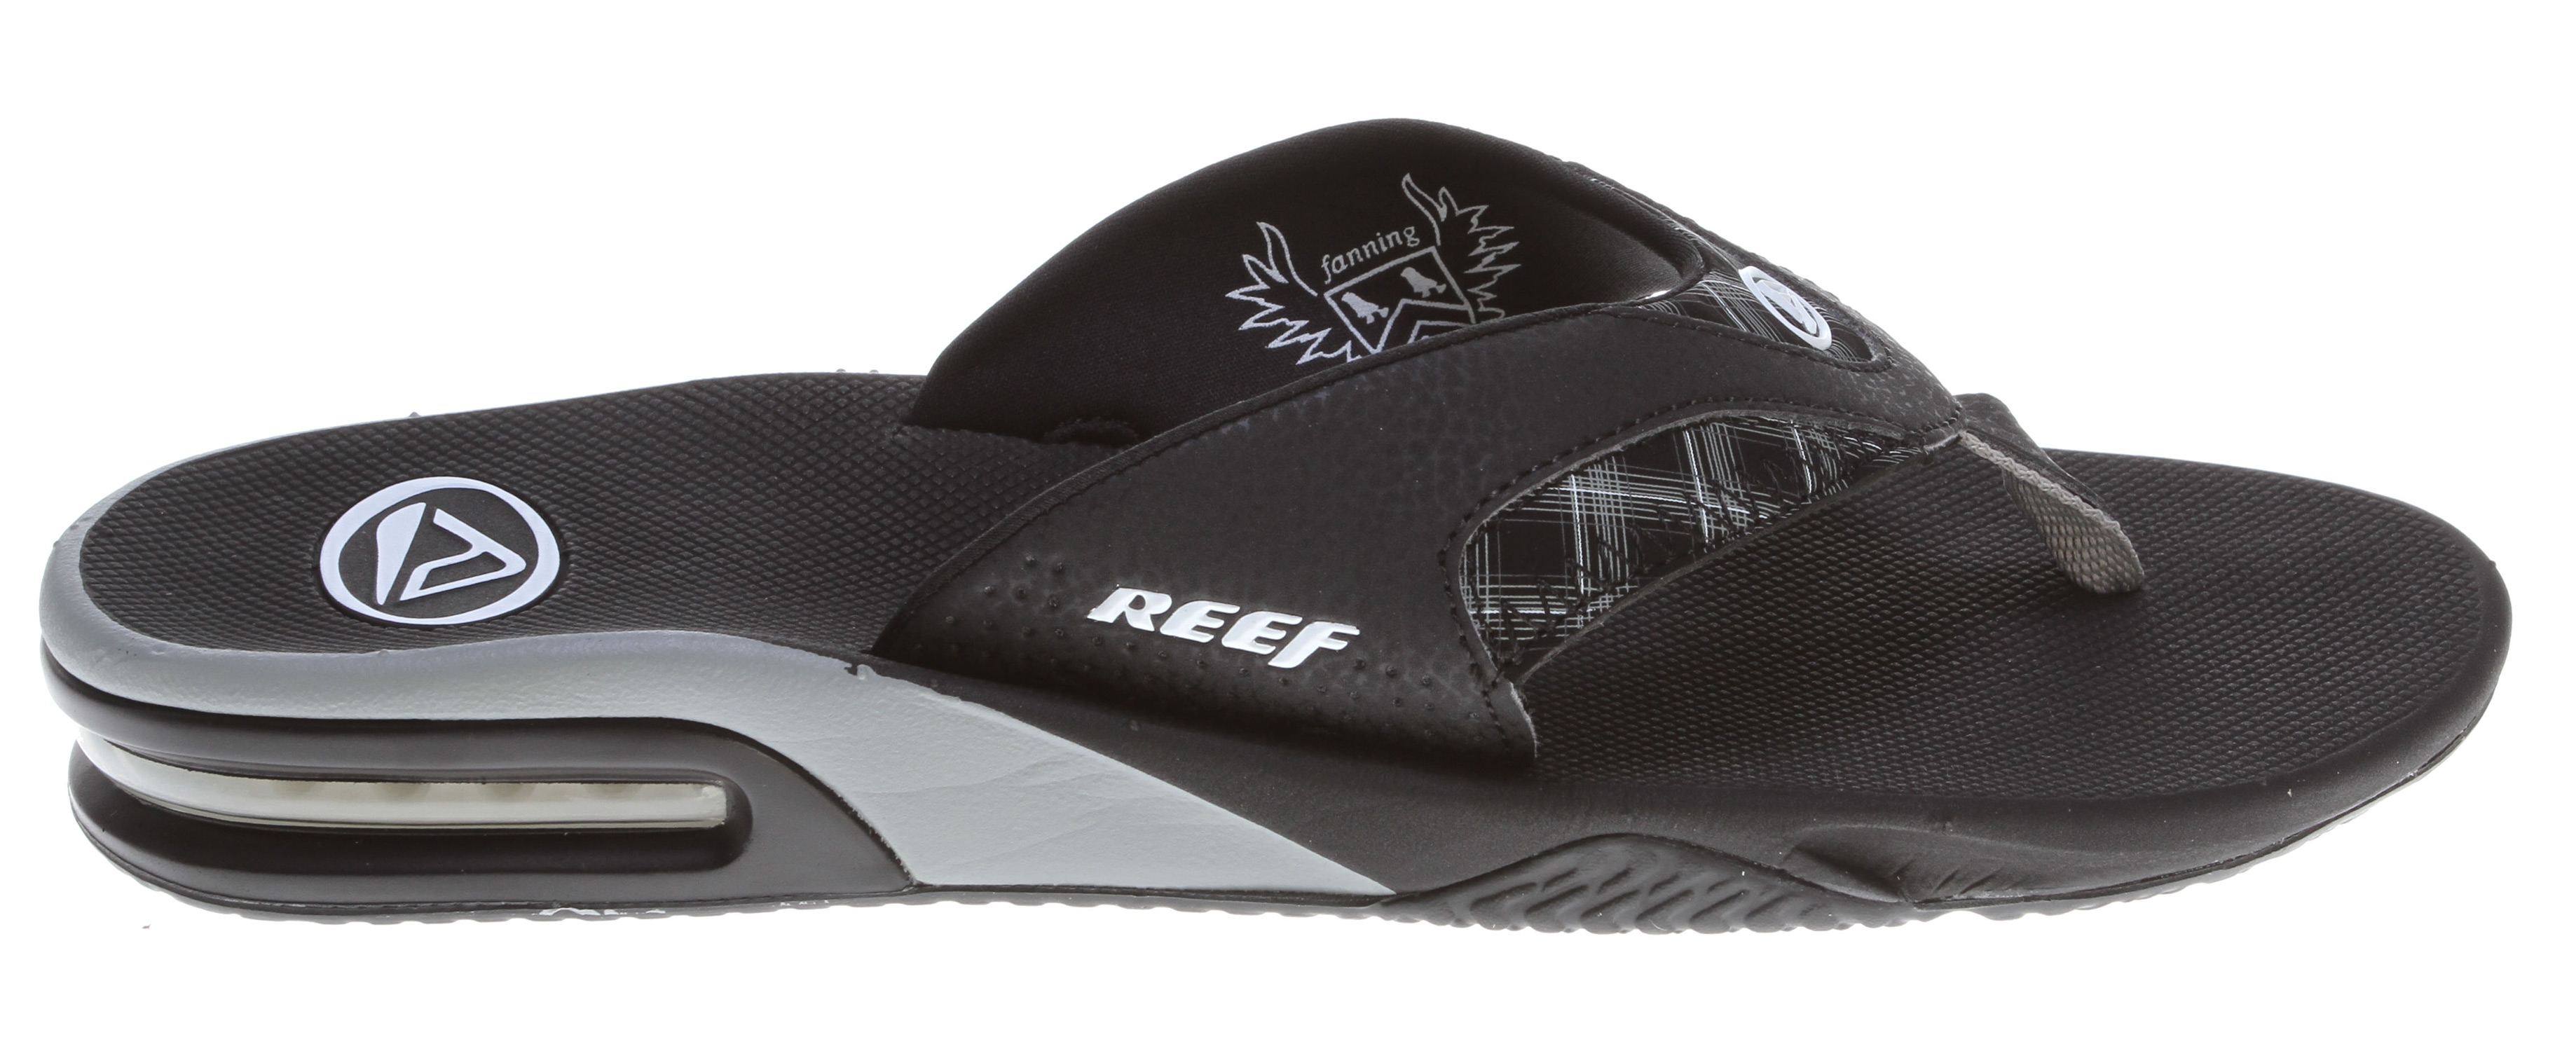 Surf Key Features of the Reef Fanning Sandals: Mick Fanning's signature footwear Guy's Performance Sandal Comfortable, water friendly synthetic nubuck upper Contoured compression molded EVA footbed with anatomical arch support Full 360° heel airbag enclosed in soft polyurethane Church key to open your soda bottle Reef icon herringbone rubber outsole - $52.00